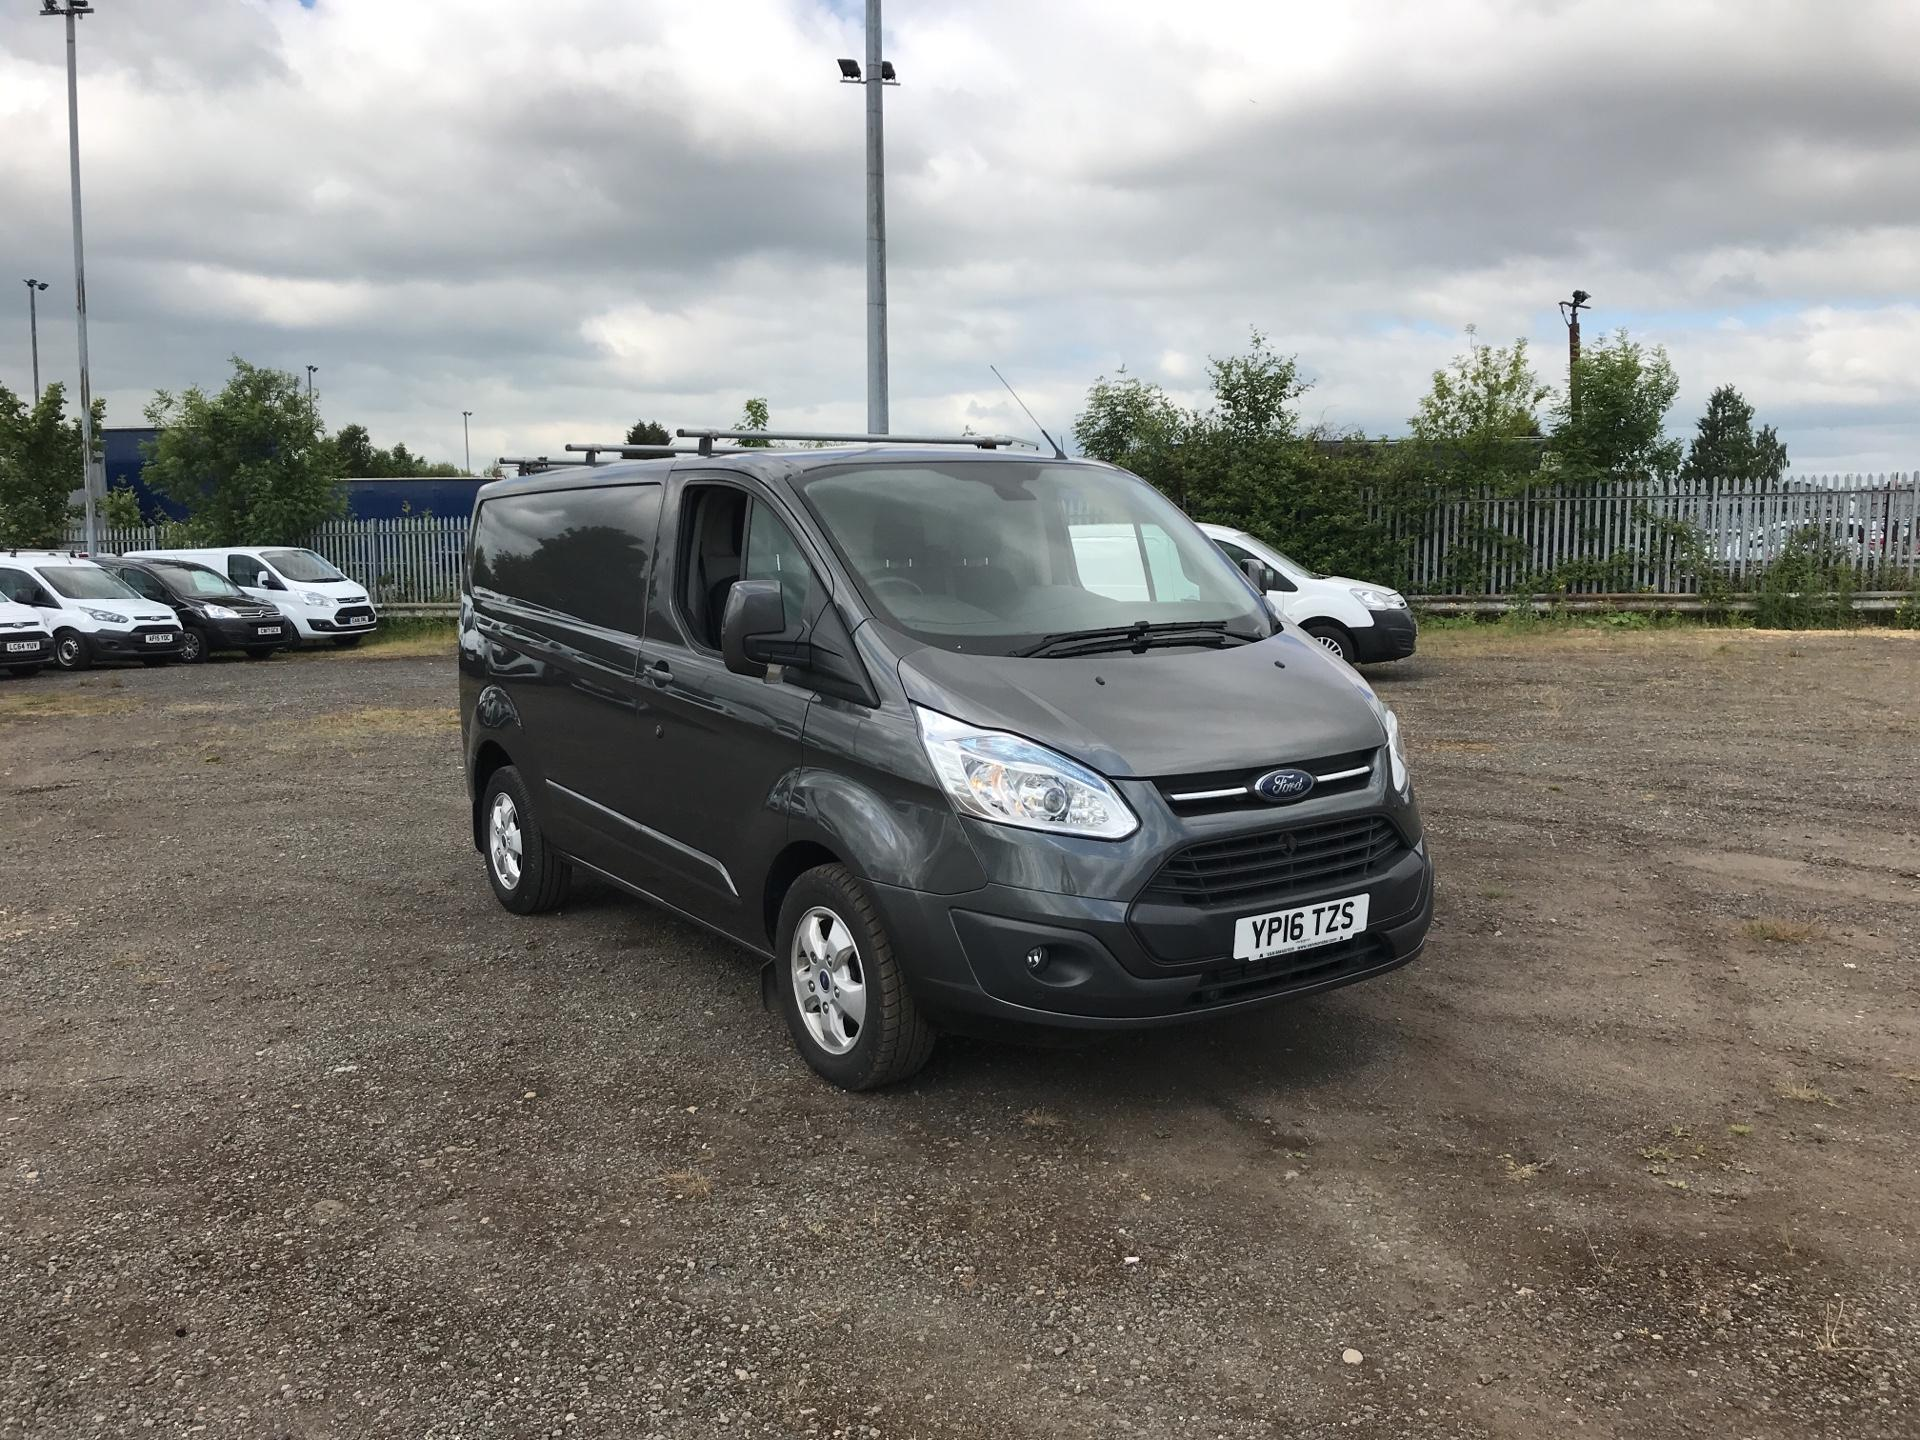 2016 Ford Transit Custom 290 L1 DIESEL FWD 2.2 TDCI 125PS LOW ROOF LIMITED VAN EURO 5 (YP16TZS) Image 1